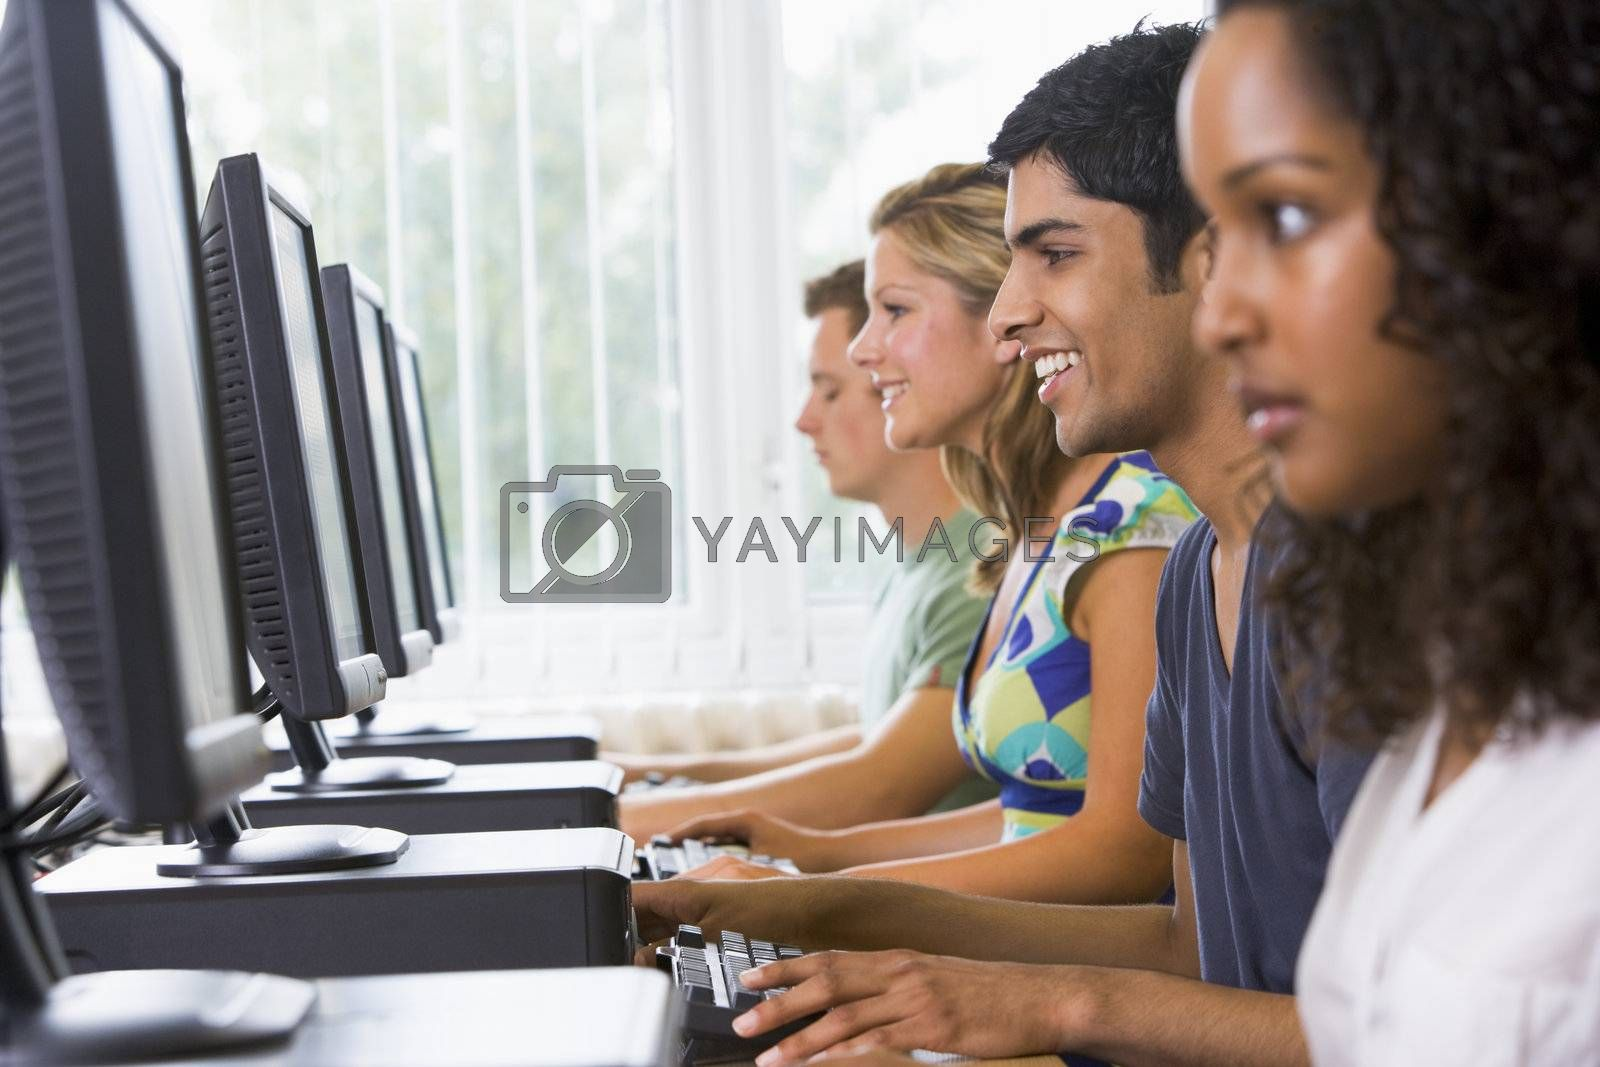 College students in a computer lab by MonkeyBusiness